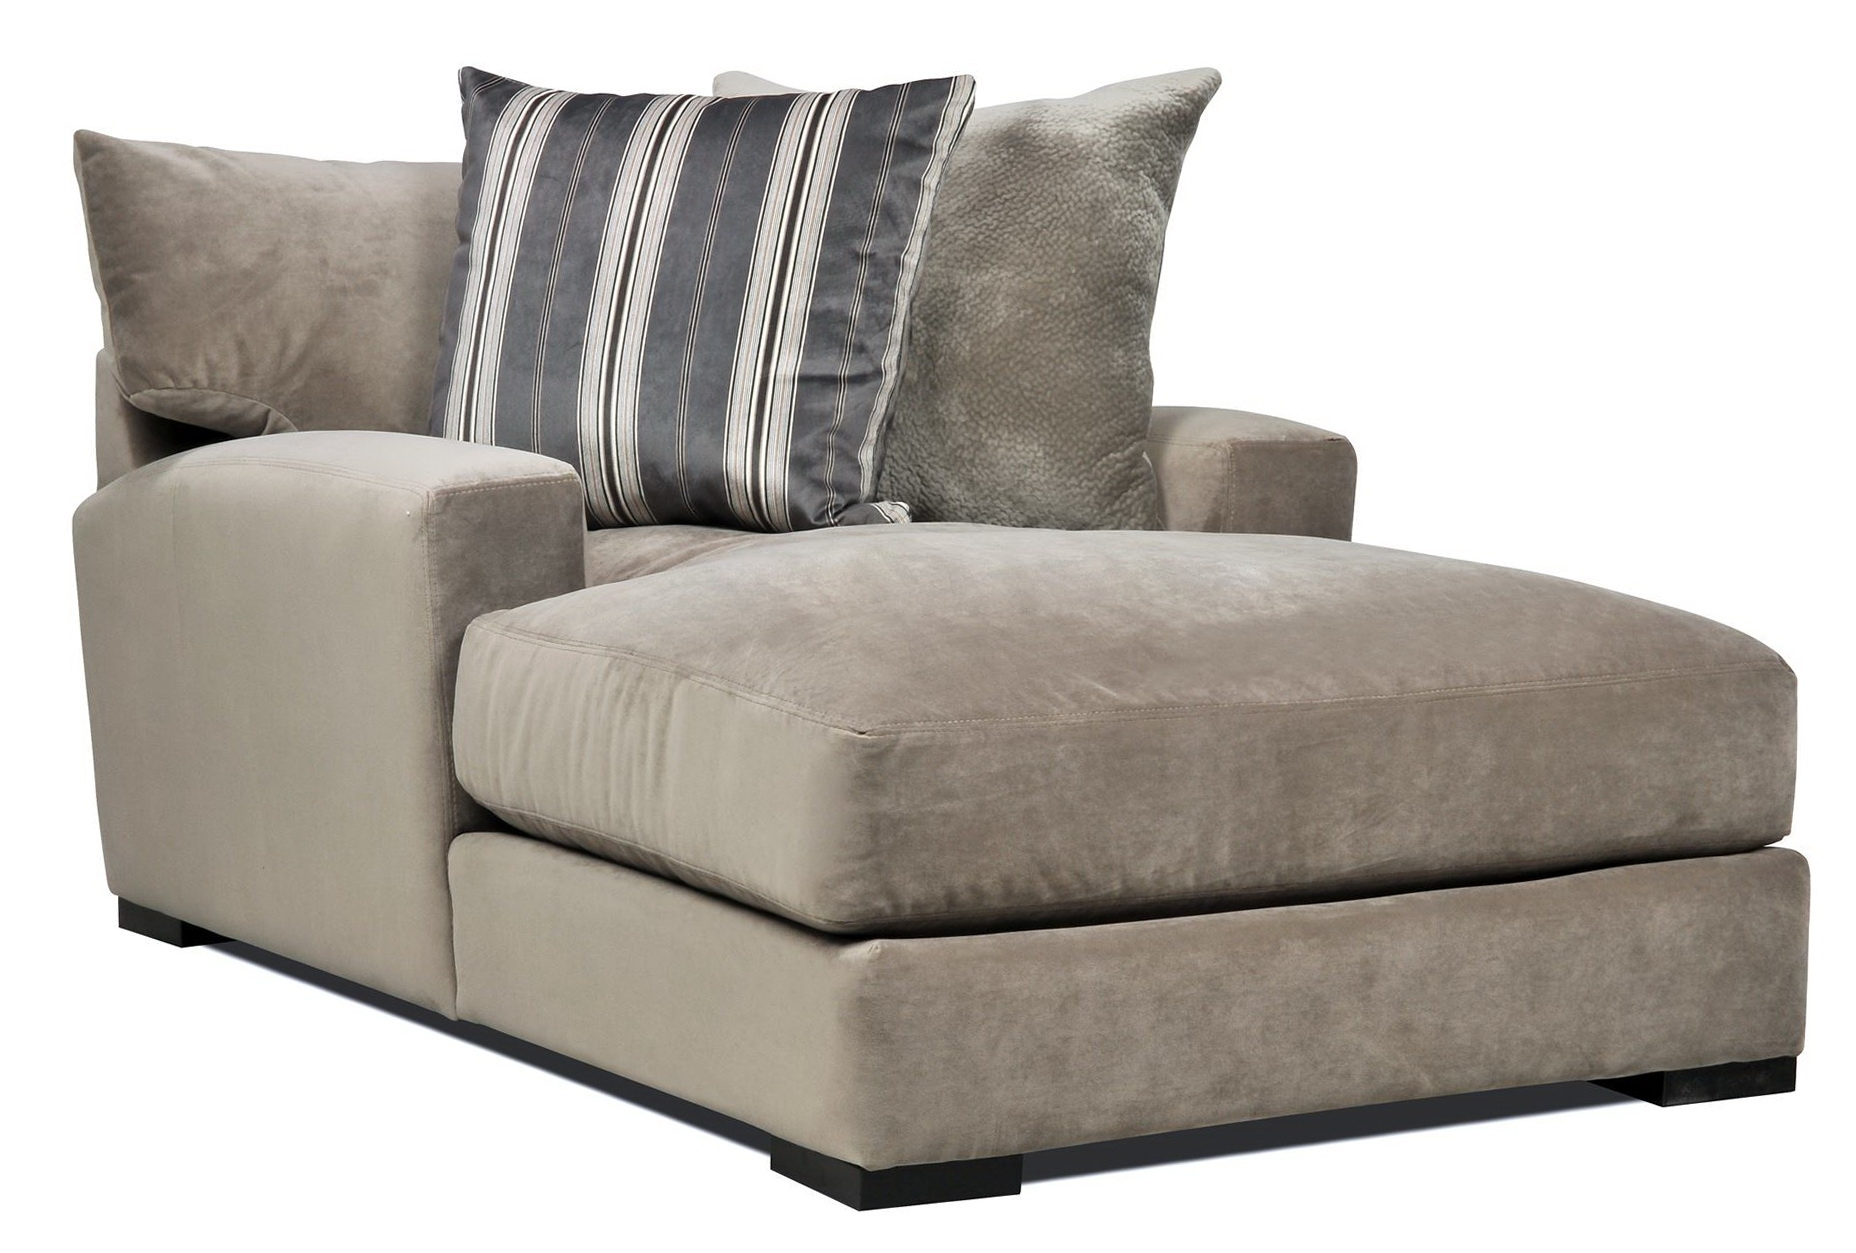 Current Oversized Chaises Intended For Furniture: Double Wide Chaise Lounge Indoor With 2 Cushions (View 10 of 15)